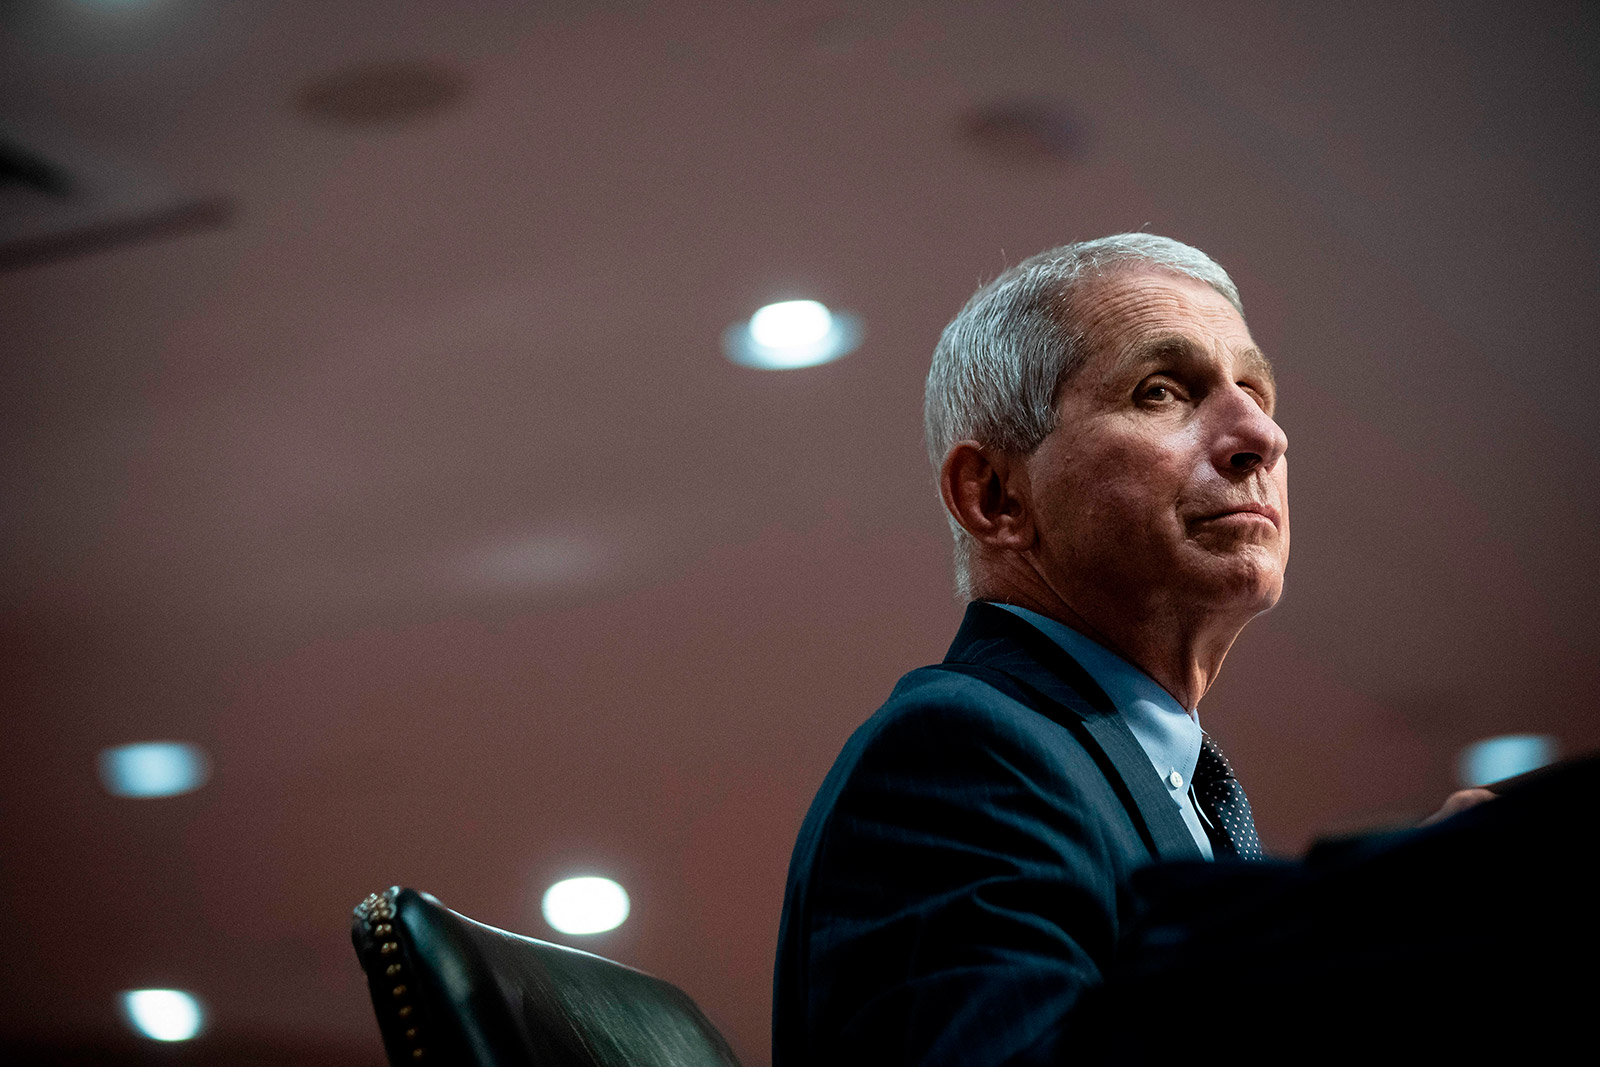 Dr. Anthony Fauci listens during a Senate Health, Education, Labor and Pensions Committee hearing in Washington, DC, on June 30.